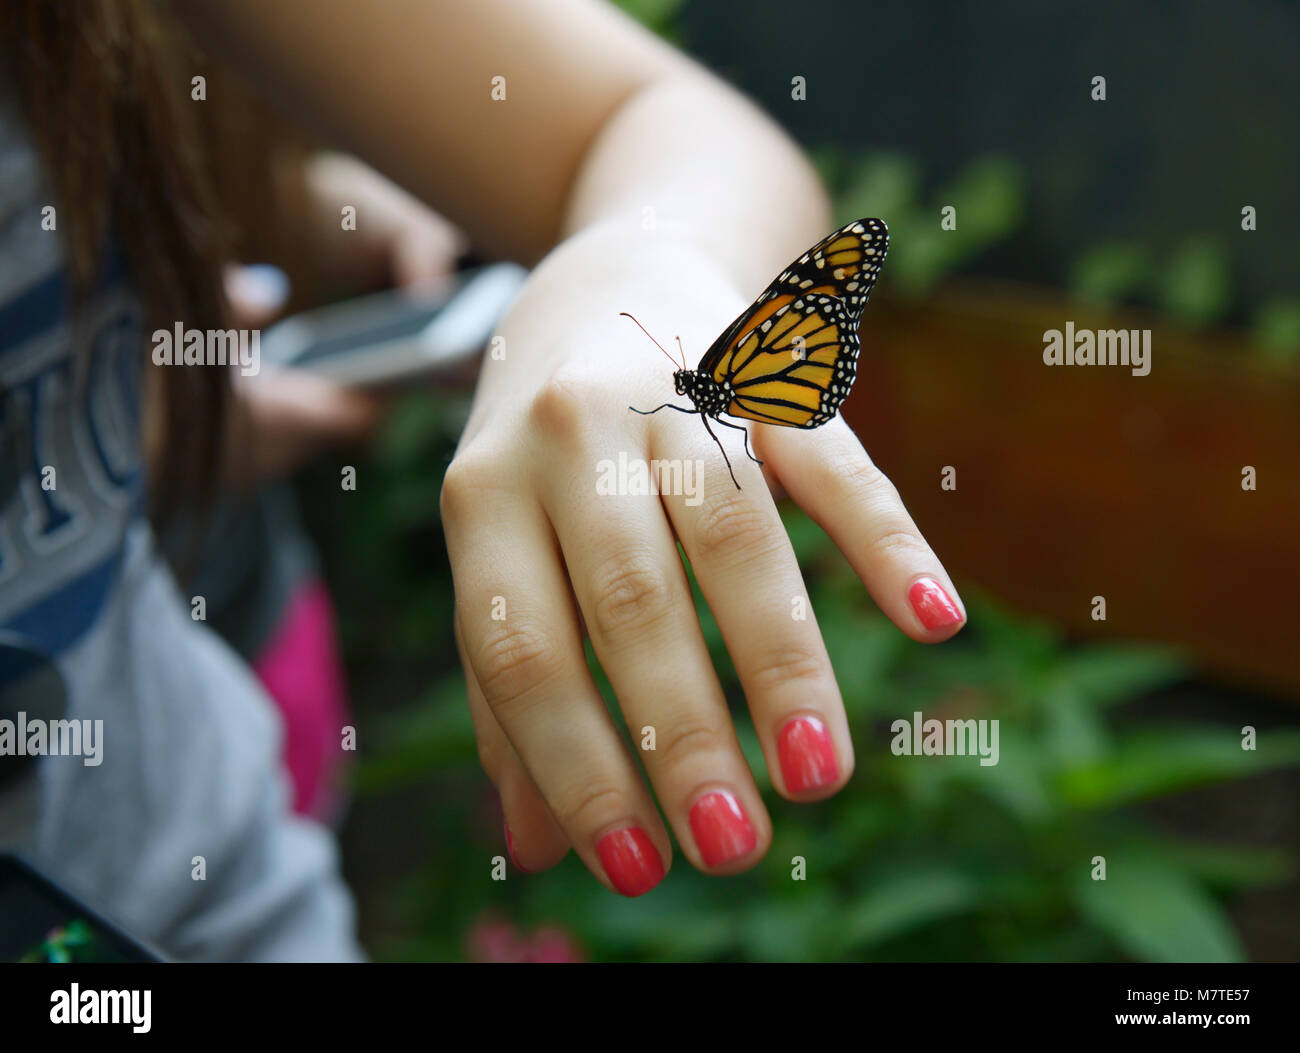 Girl with monarch butterfly on her hand, La Paz Waterfall Gardens, Costa Rica - Stock Image